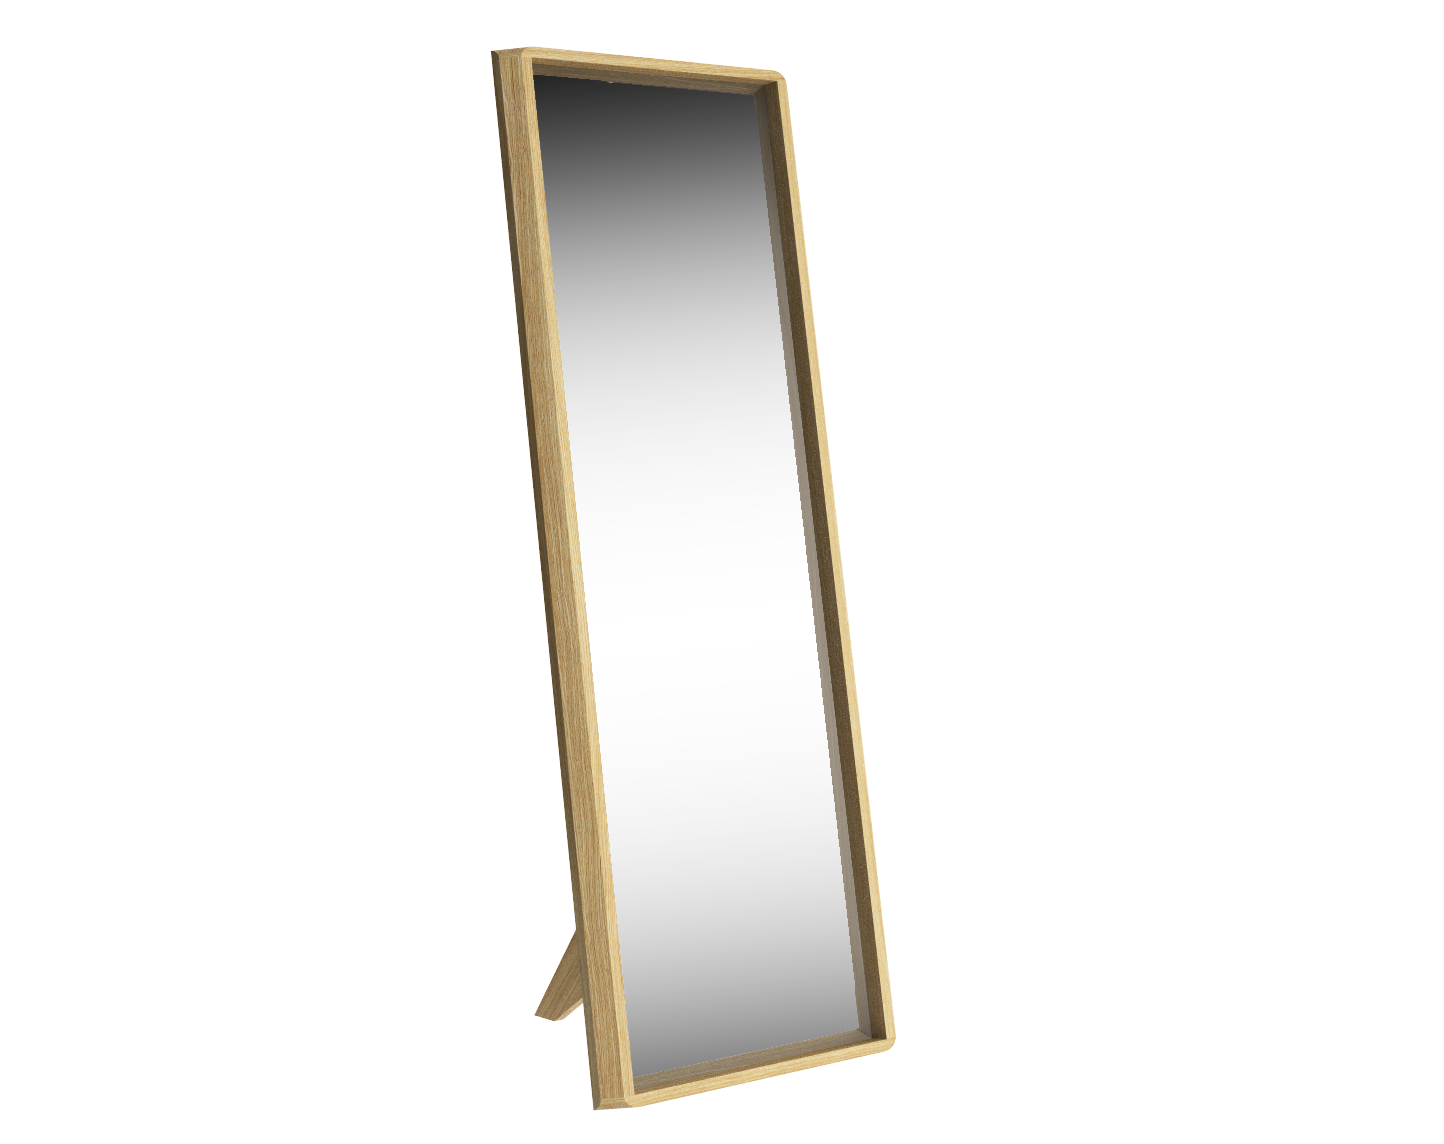 how to change mirror image